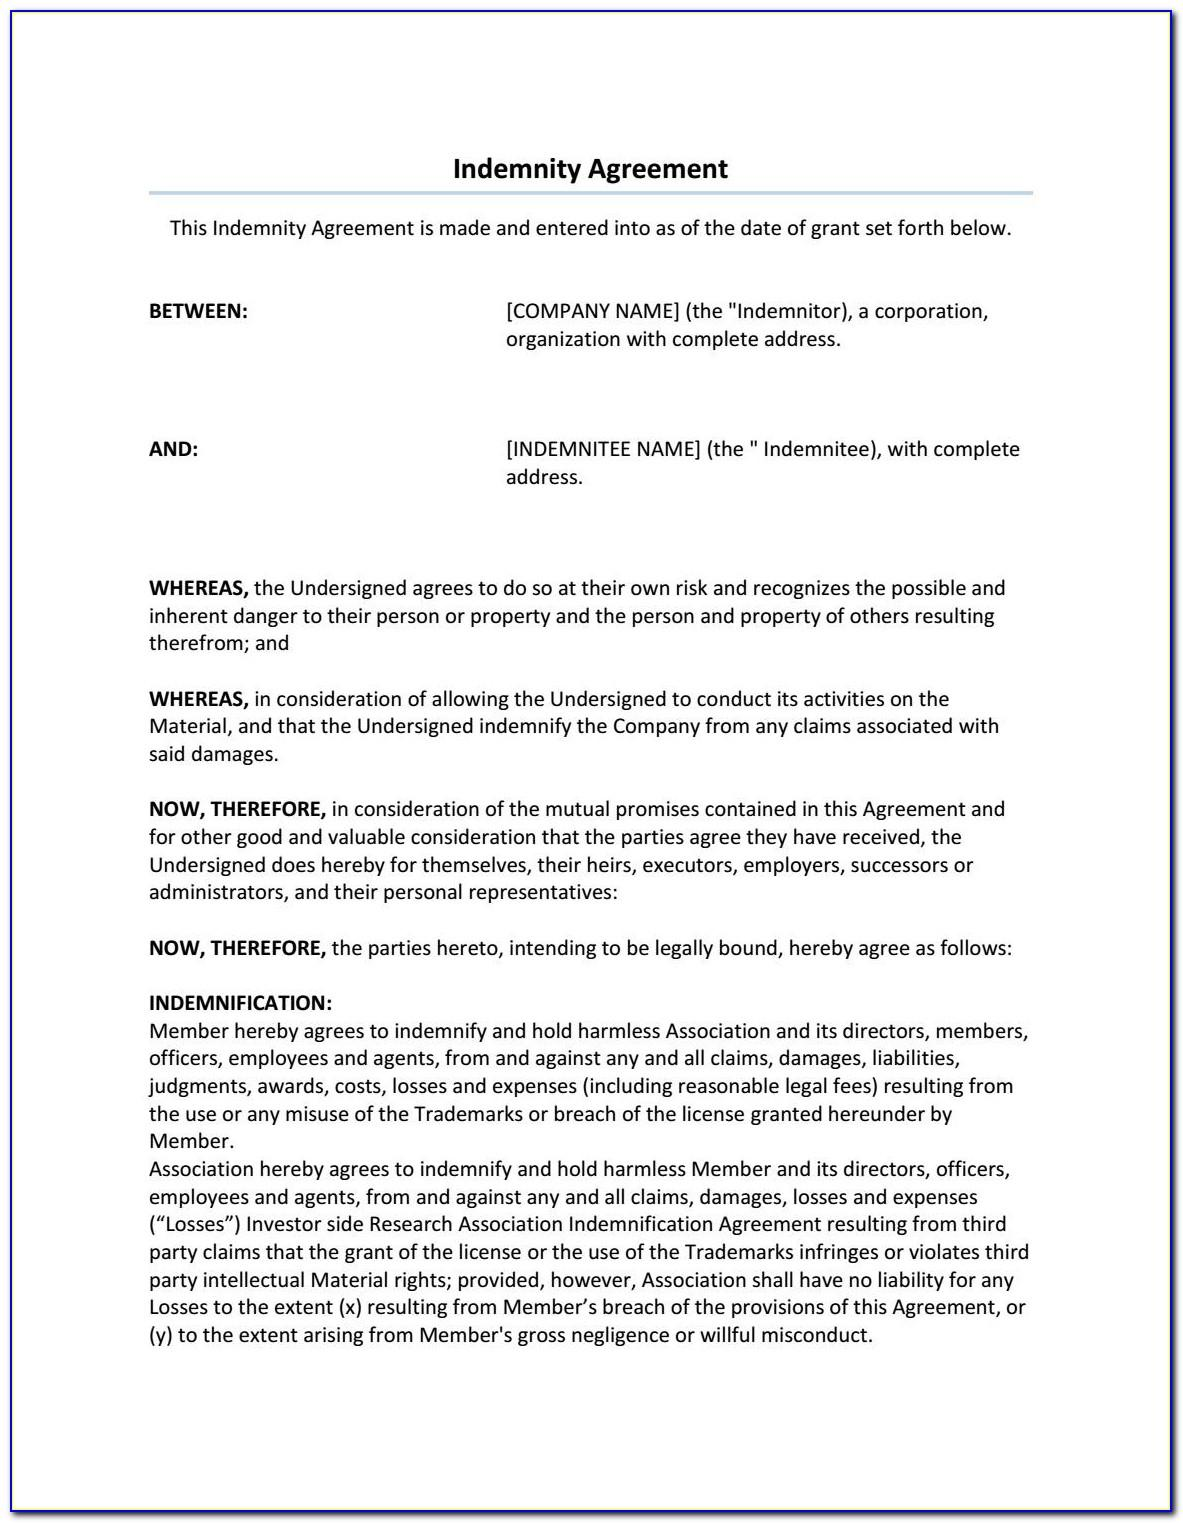 Hold Harmless Indemnification Agreement Template